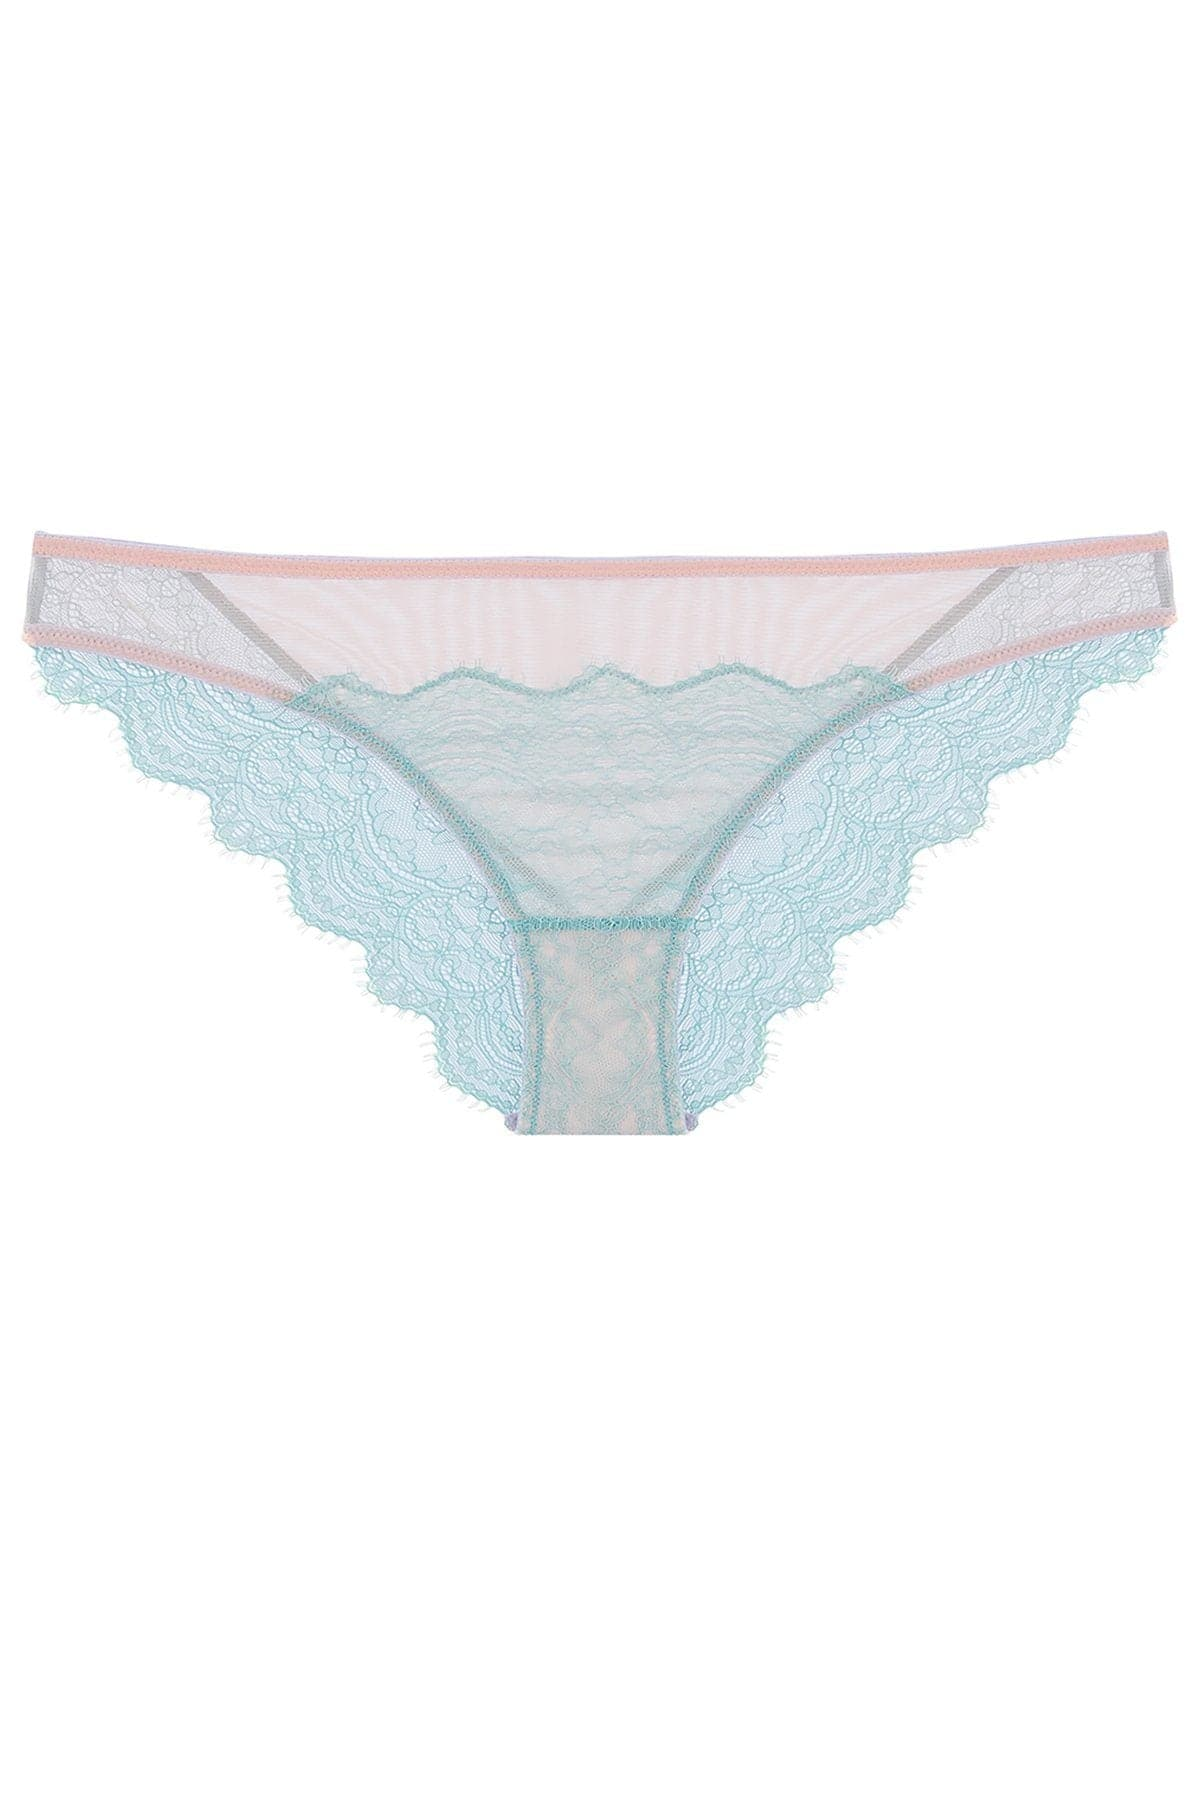 iris low rise brief dora larsen womanhood lingerie